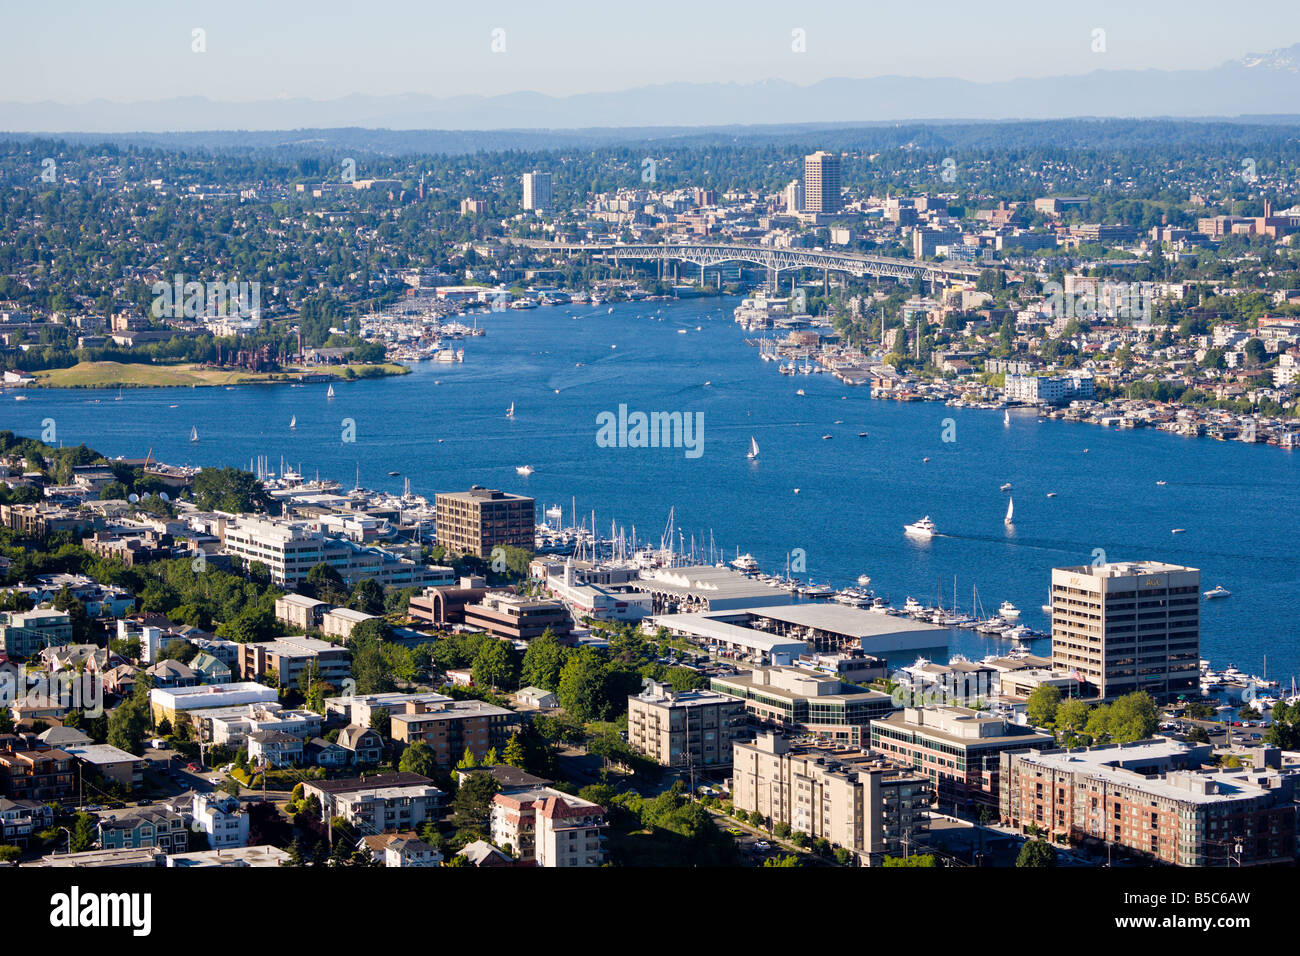 Boats sail on Lake Union in Seattle Washington - Stock Image